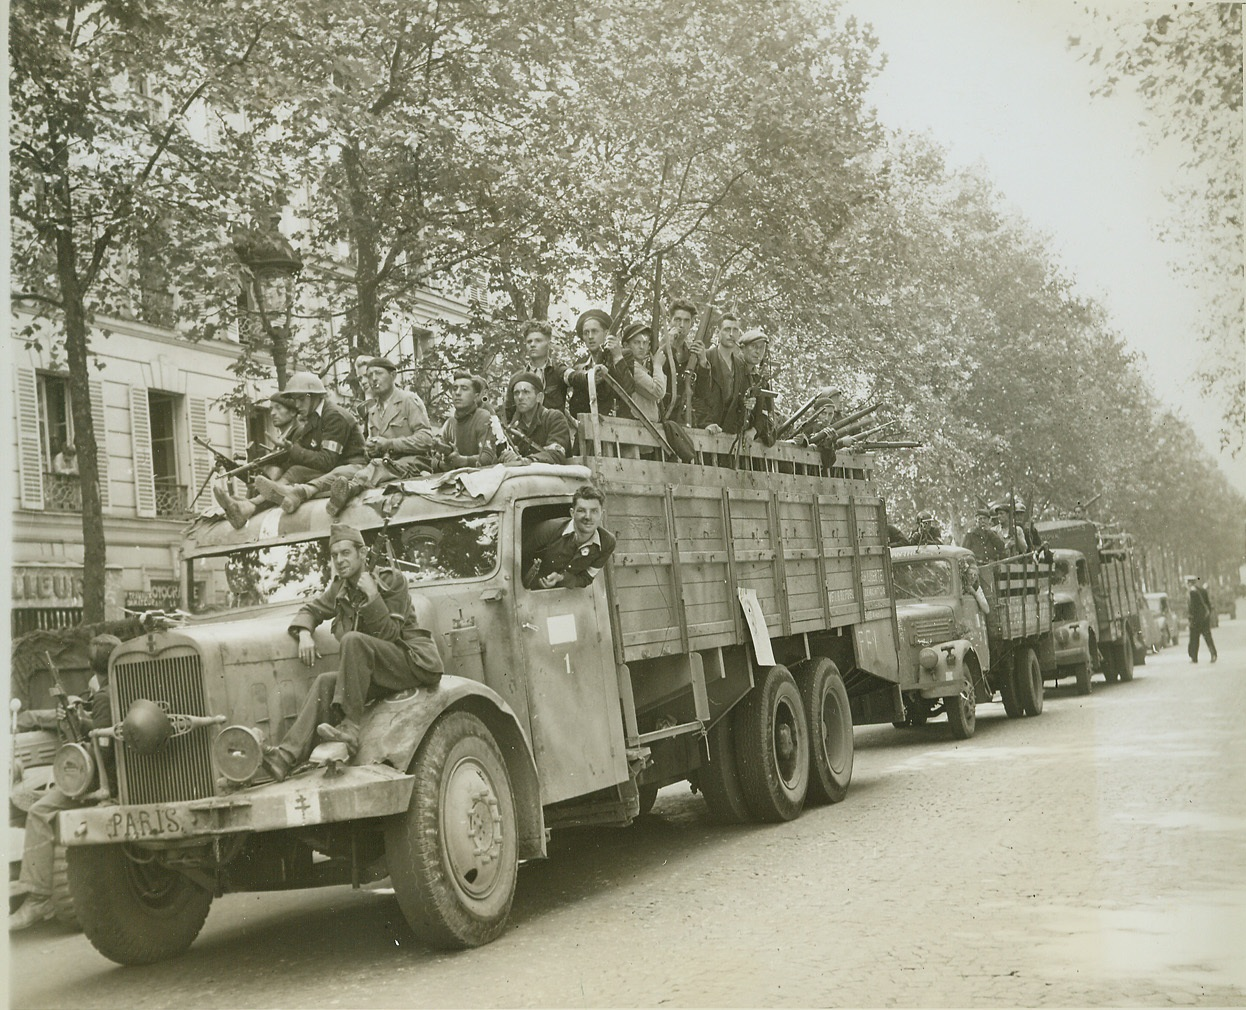 Sniper Hunt, 8/28/1944. PARIS -- Scanning streets and rooftops, FFI warriors ride through Paris in captured German vehicles, hunting German snipers and French Fascists fighting last-ditch resistance in the French capital. Note the Cross of Lorraine painted on the bumper of the captured truck in foreground. Credit: - WP- (ACME Photo by Andy Lopez for the War Picture Pool);